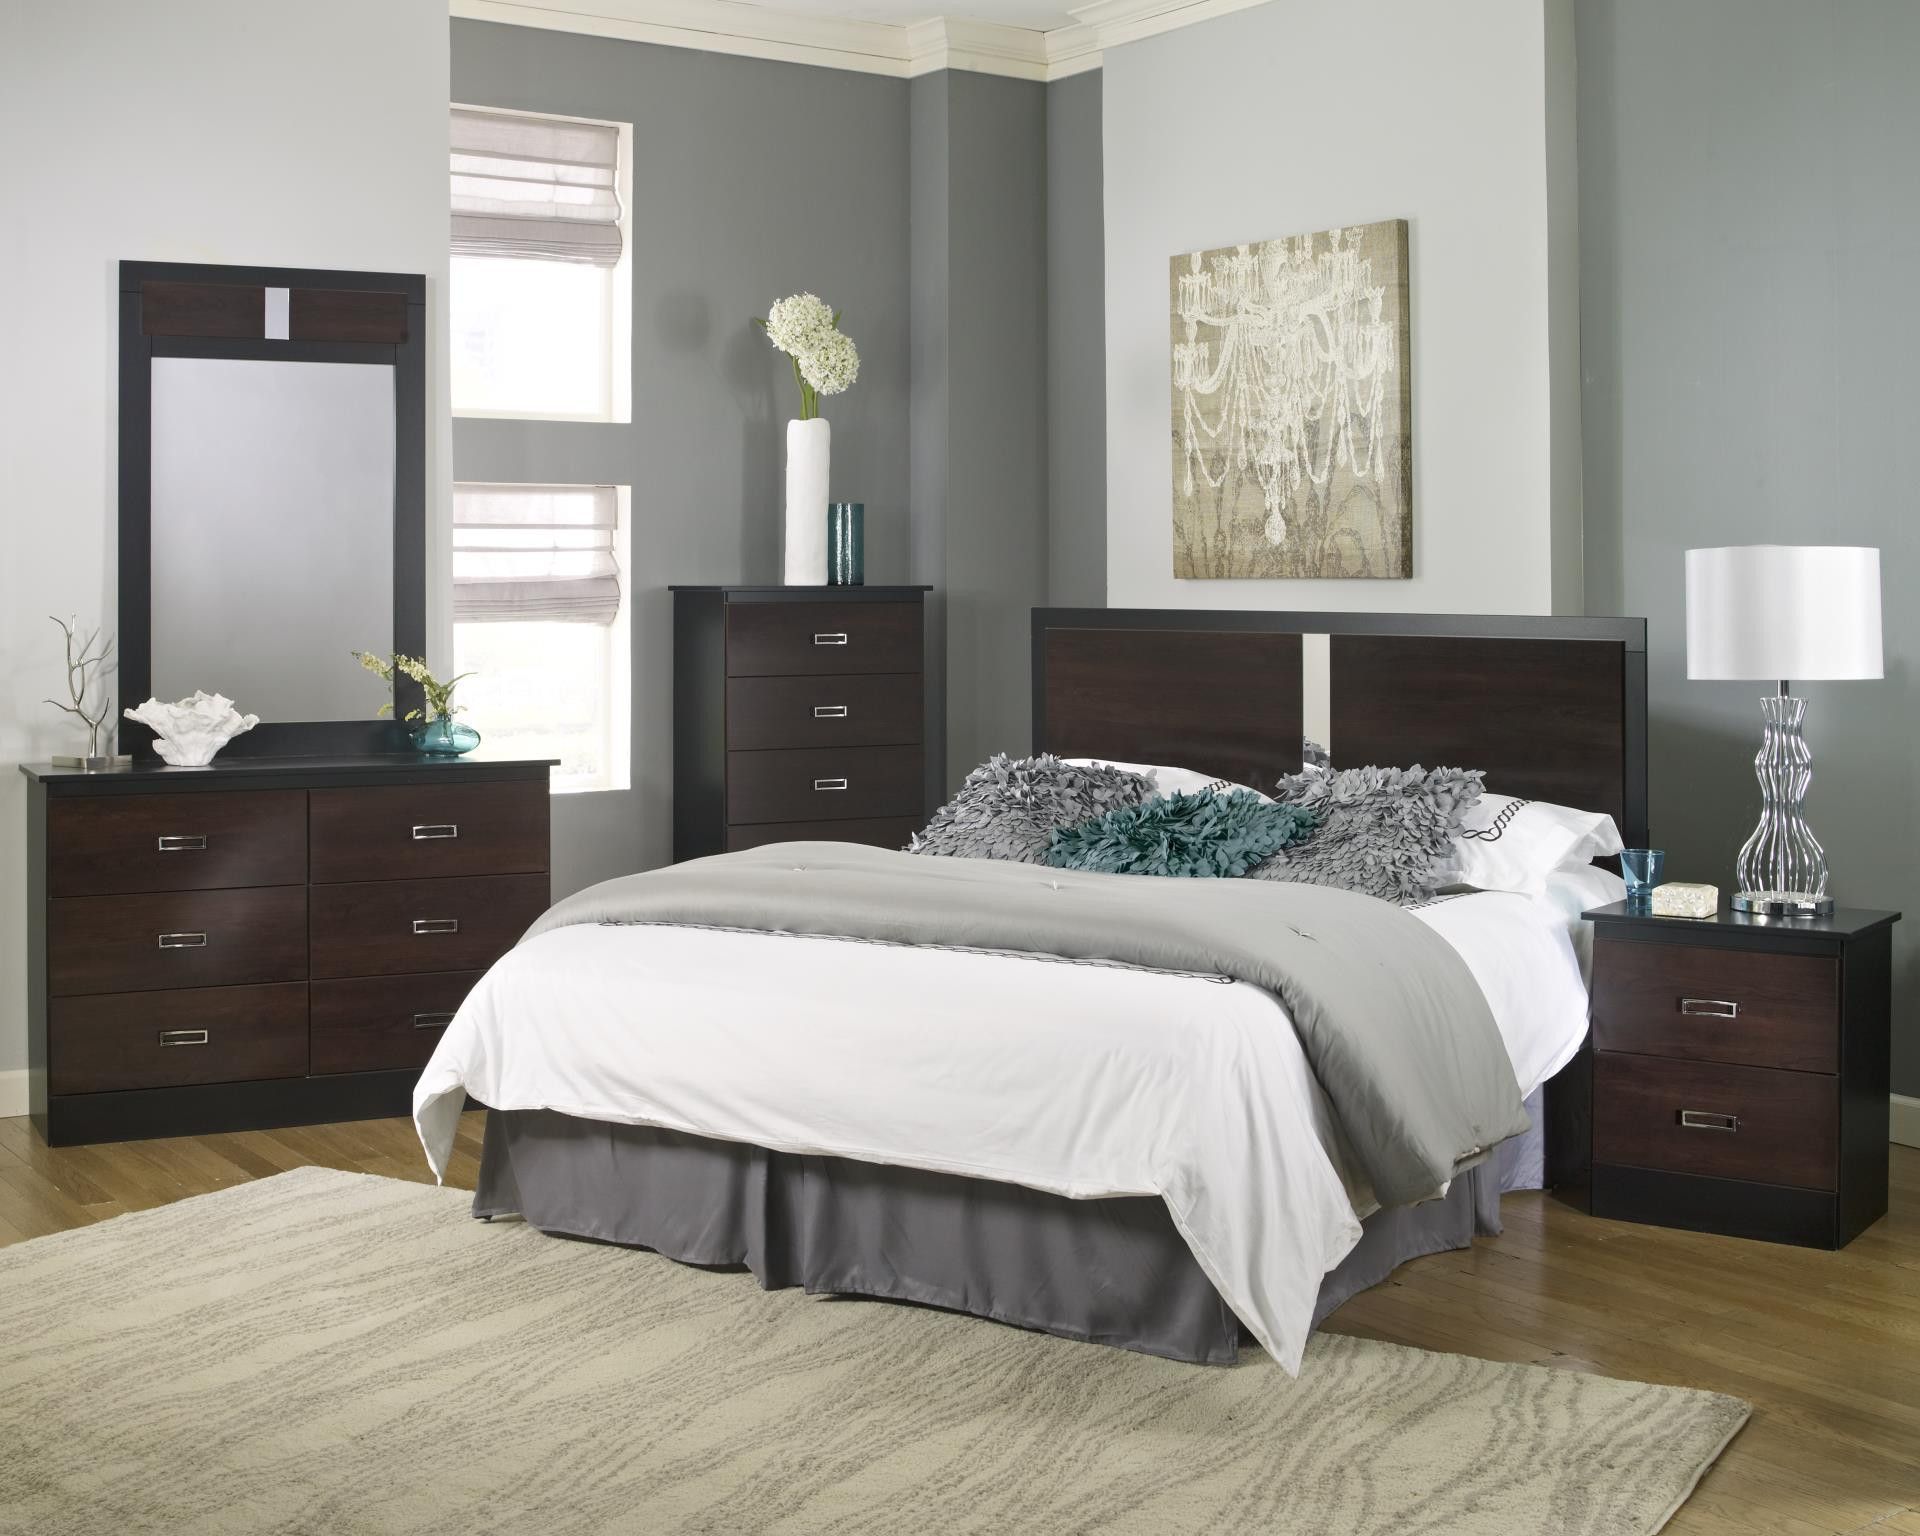 Best ideas about Bedroom Furniture Discounts . Save or Pin Discount Adult Bedroom Set Family Discount Furniture Now.